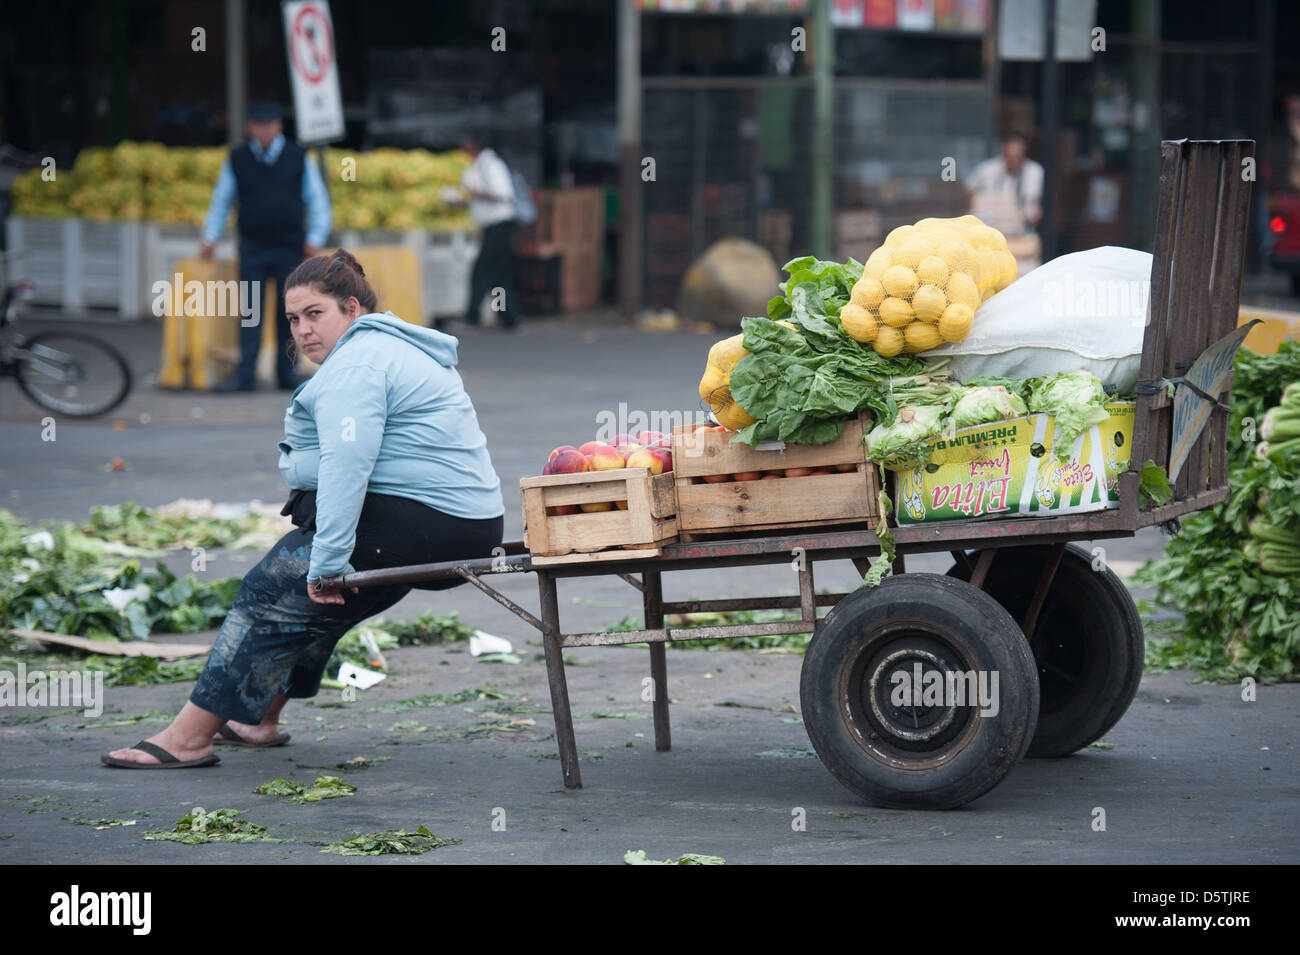 Worker sitting with vegetables in a truck at Lo Valledor central wholesale produce market in Santiago, Chile - Stock Image